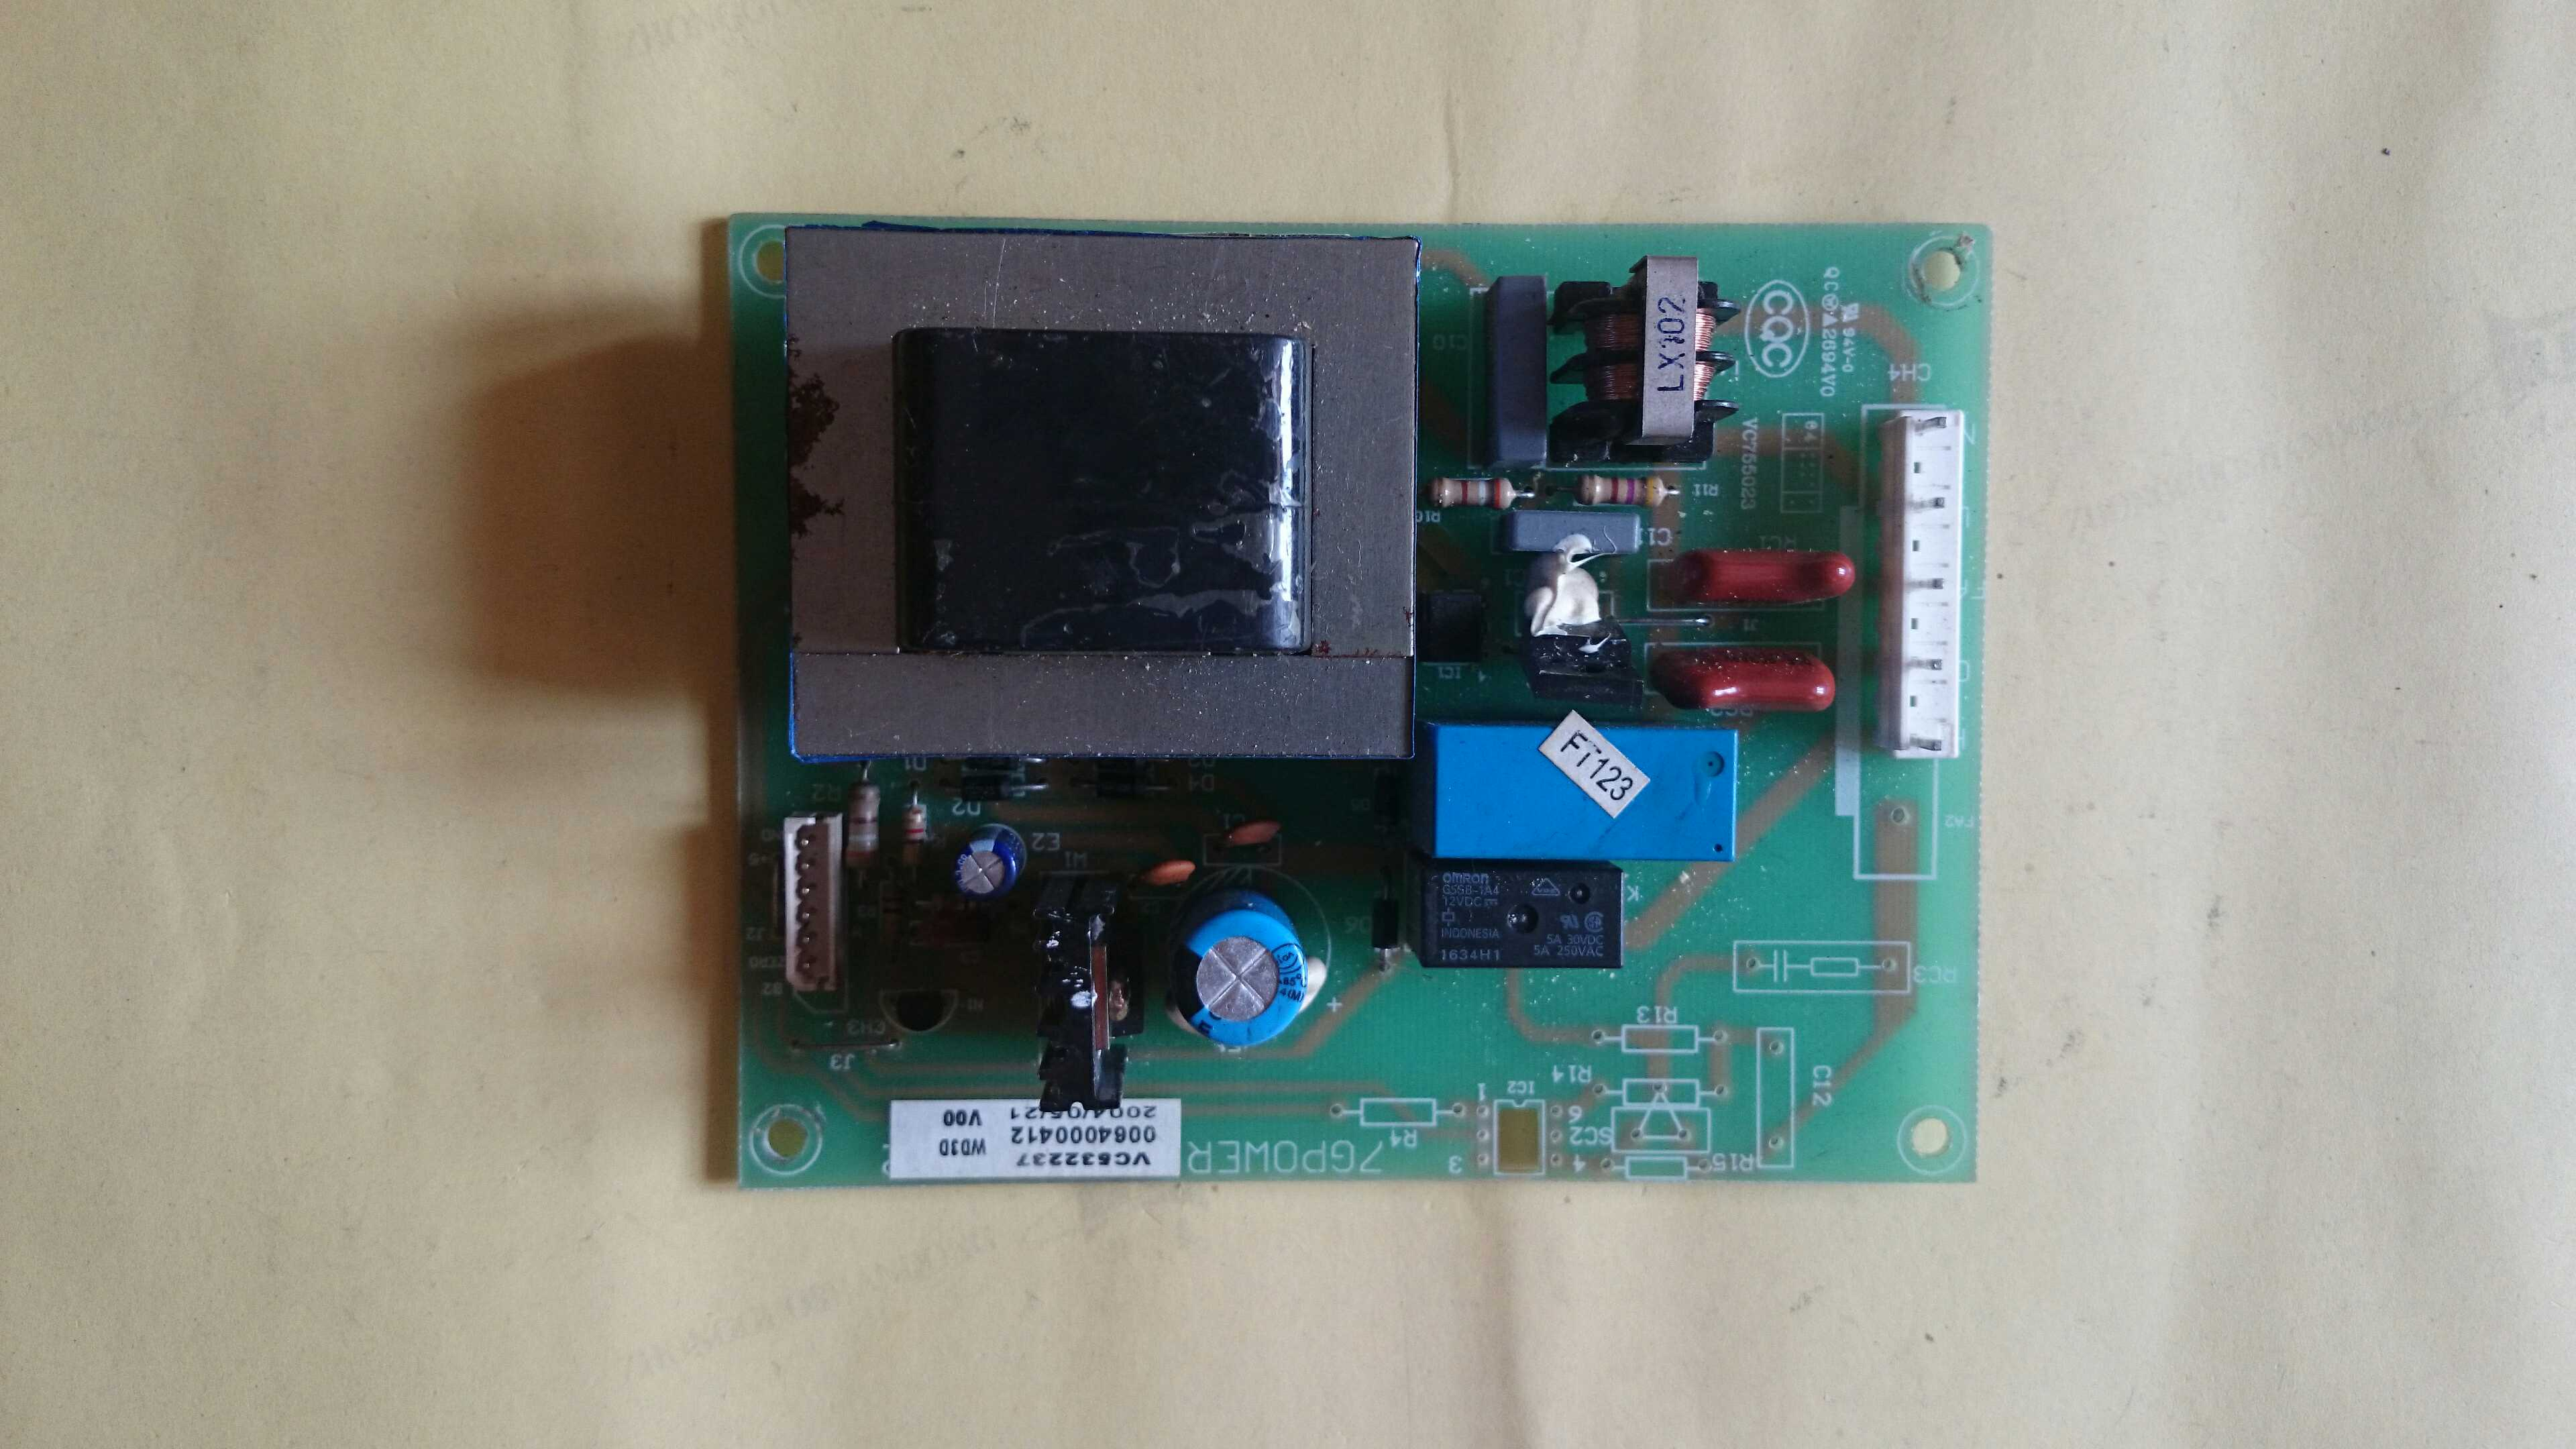 Haier refrigerator power main control board 0064000412 original BCD-190G/C -210G/C power board 95% new for haier refrigerator computer board circuit board bcd 198k 0064000619 driver board good working